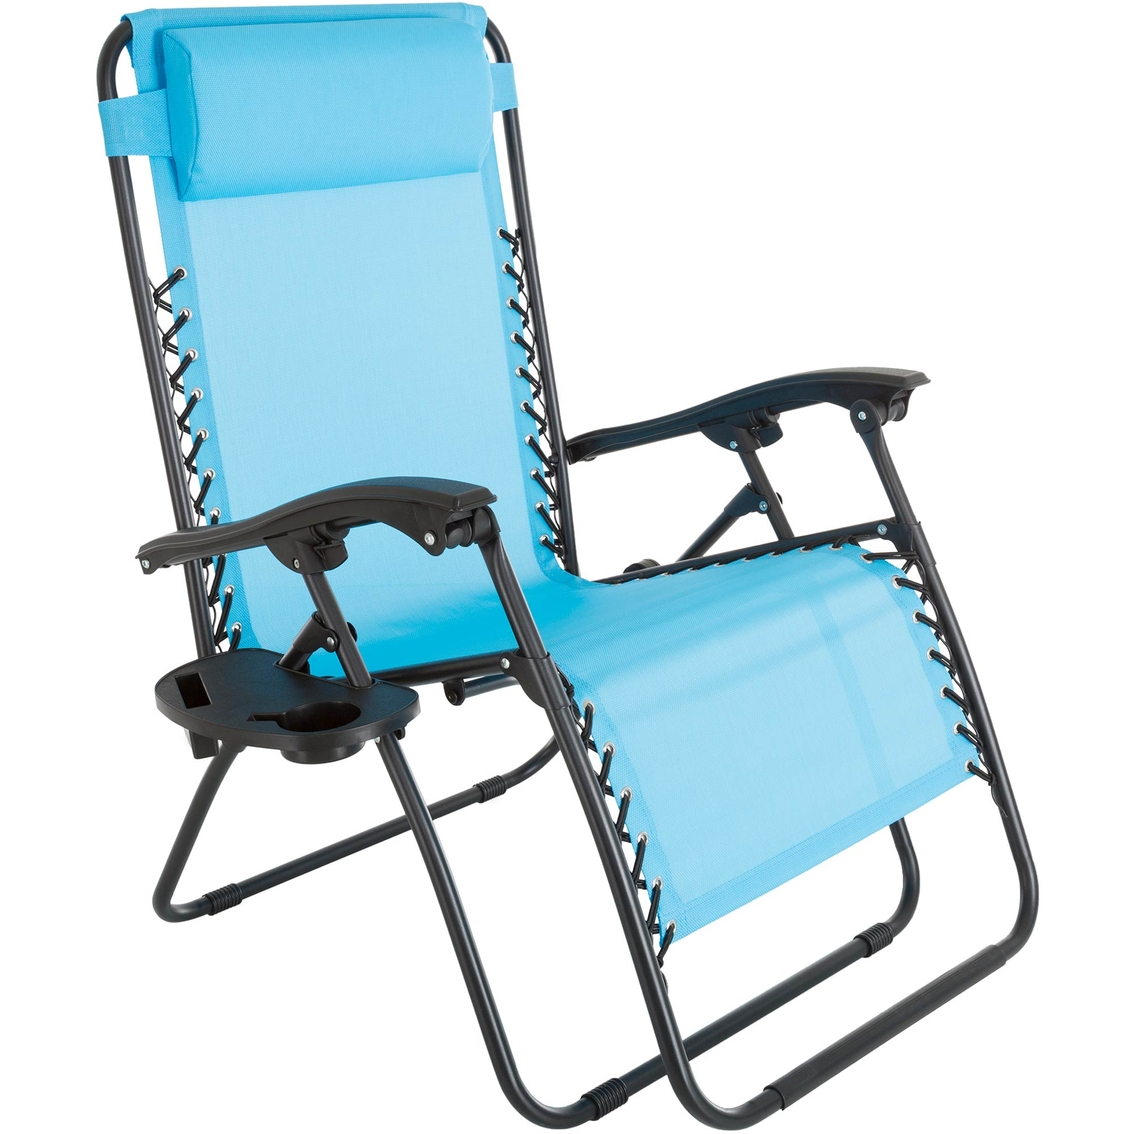 Pure Garden Oversized Zero Gravity Chair With Pillow And Cup